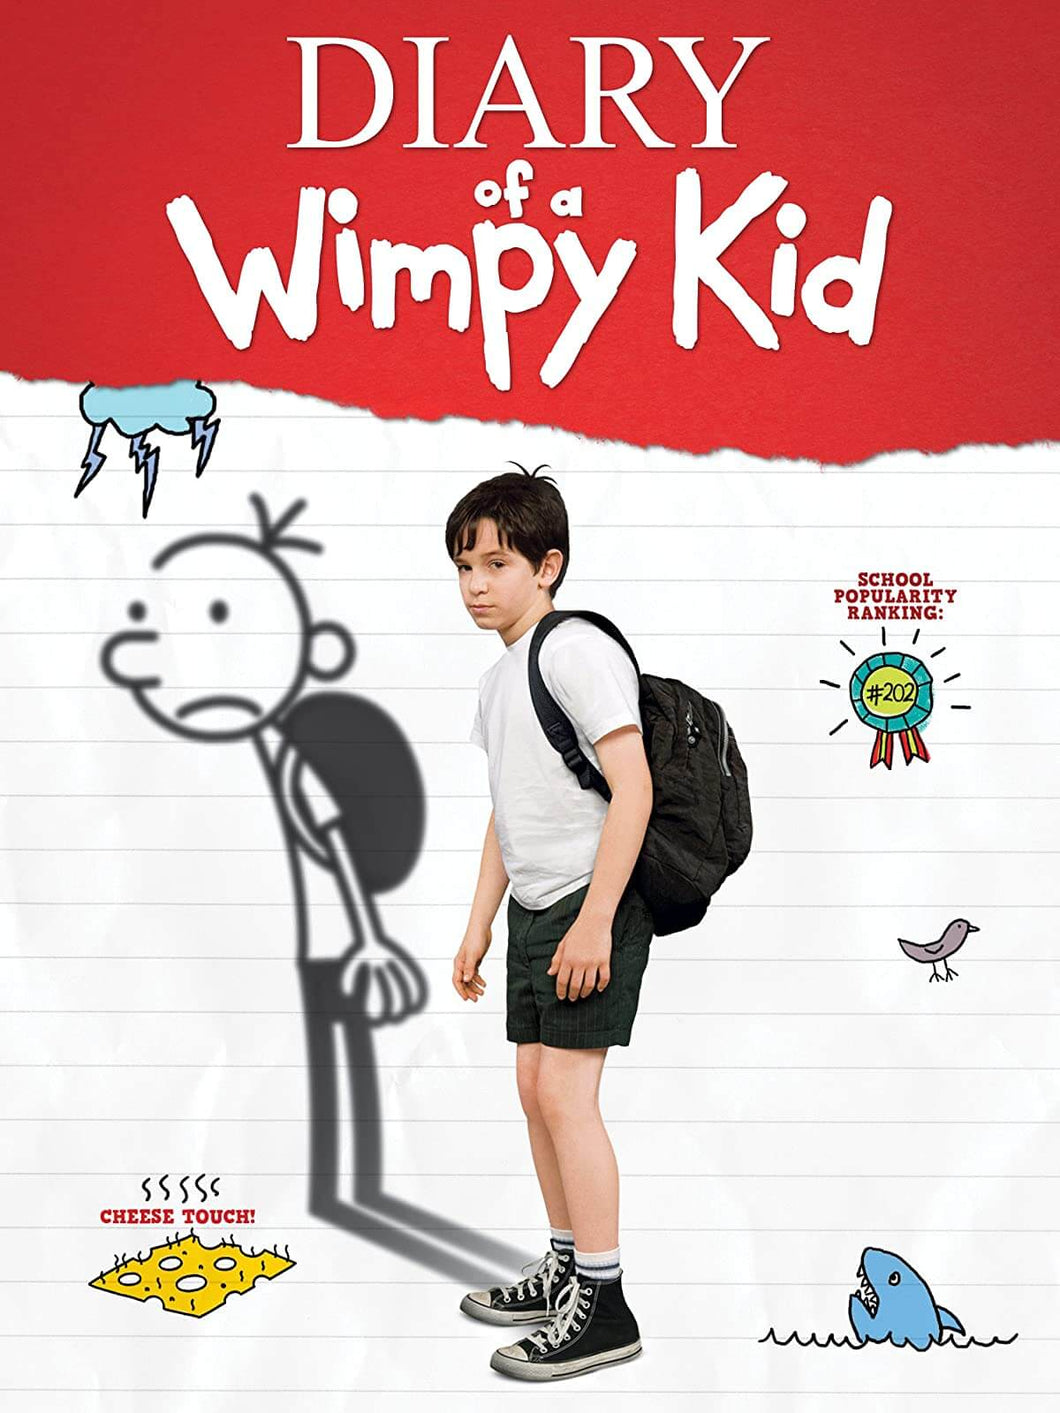 Diary of a Wimpy Kid | HD Movies Anywhere Code Ports to Vudu, iTunes, GP - Movie Sometimes